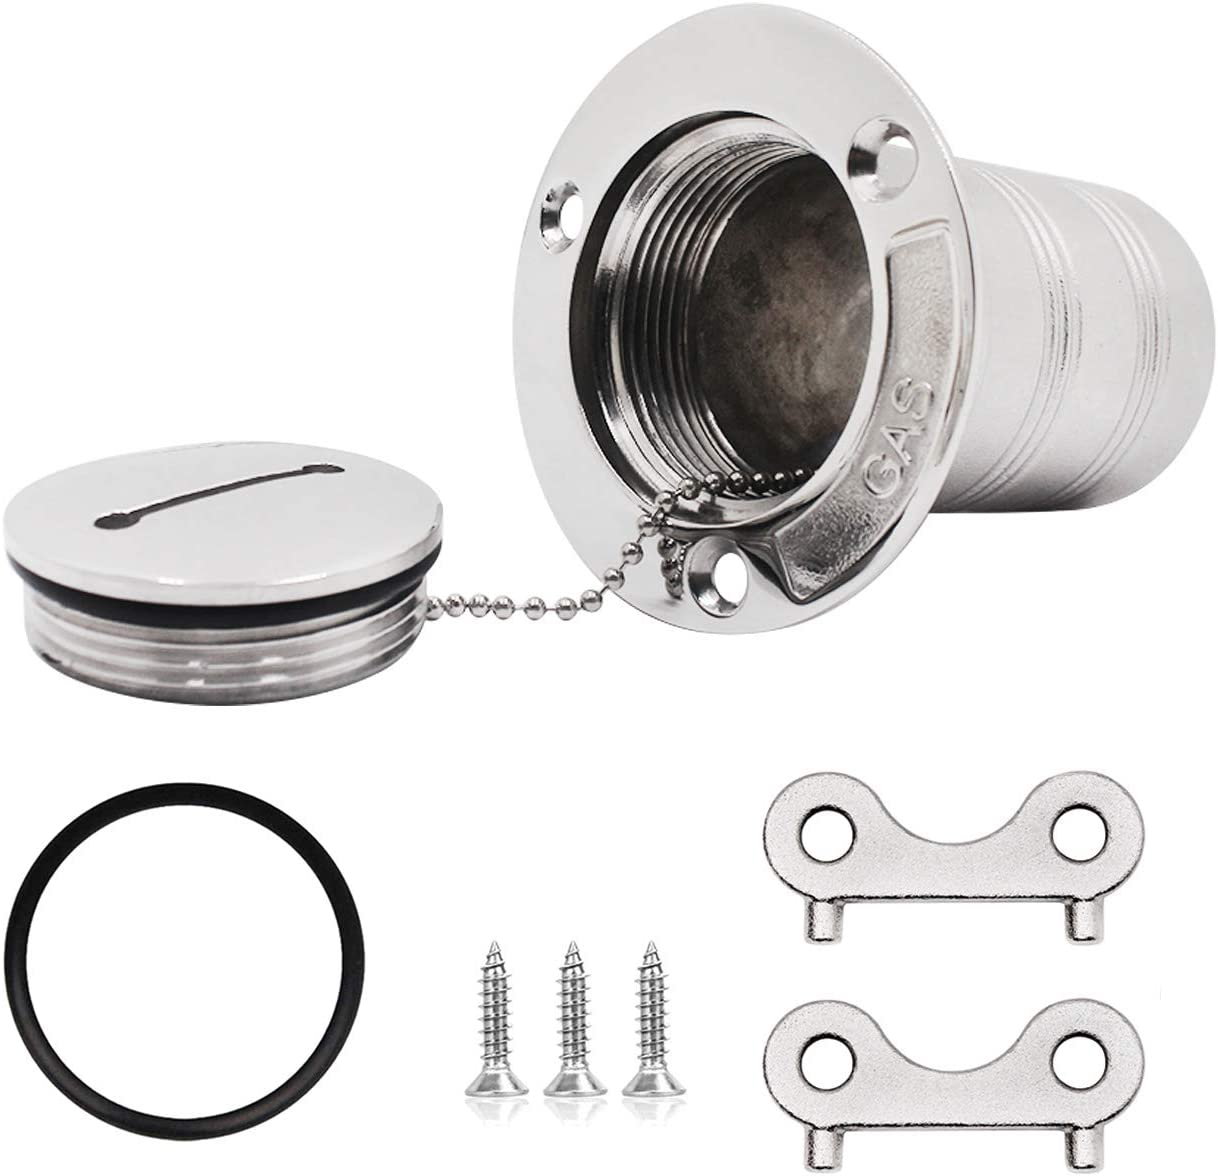 Screws and Spare O-Ring 51mm SHENGHUISS 2 Inch Boat Deck Plate Gas Fill//Filler Key Cap Kit Marine Stainless Steel 316 Boat Yacht Caravan with 2 Keys